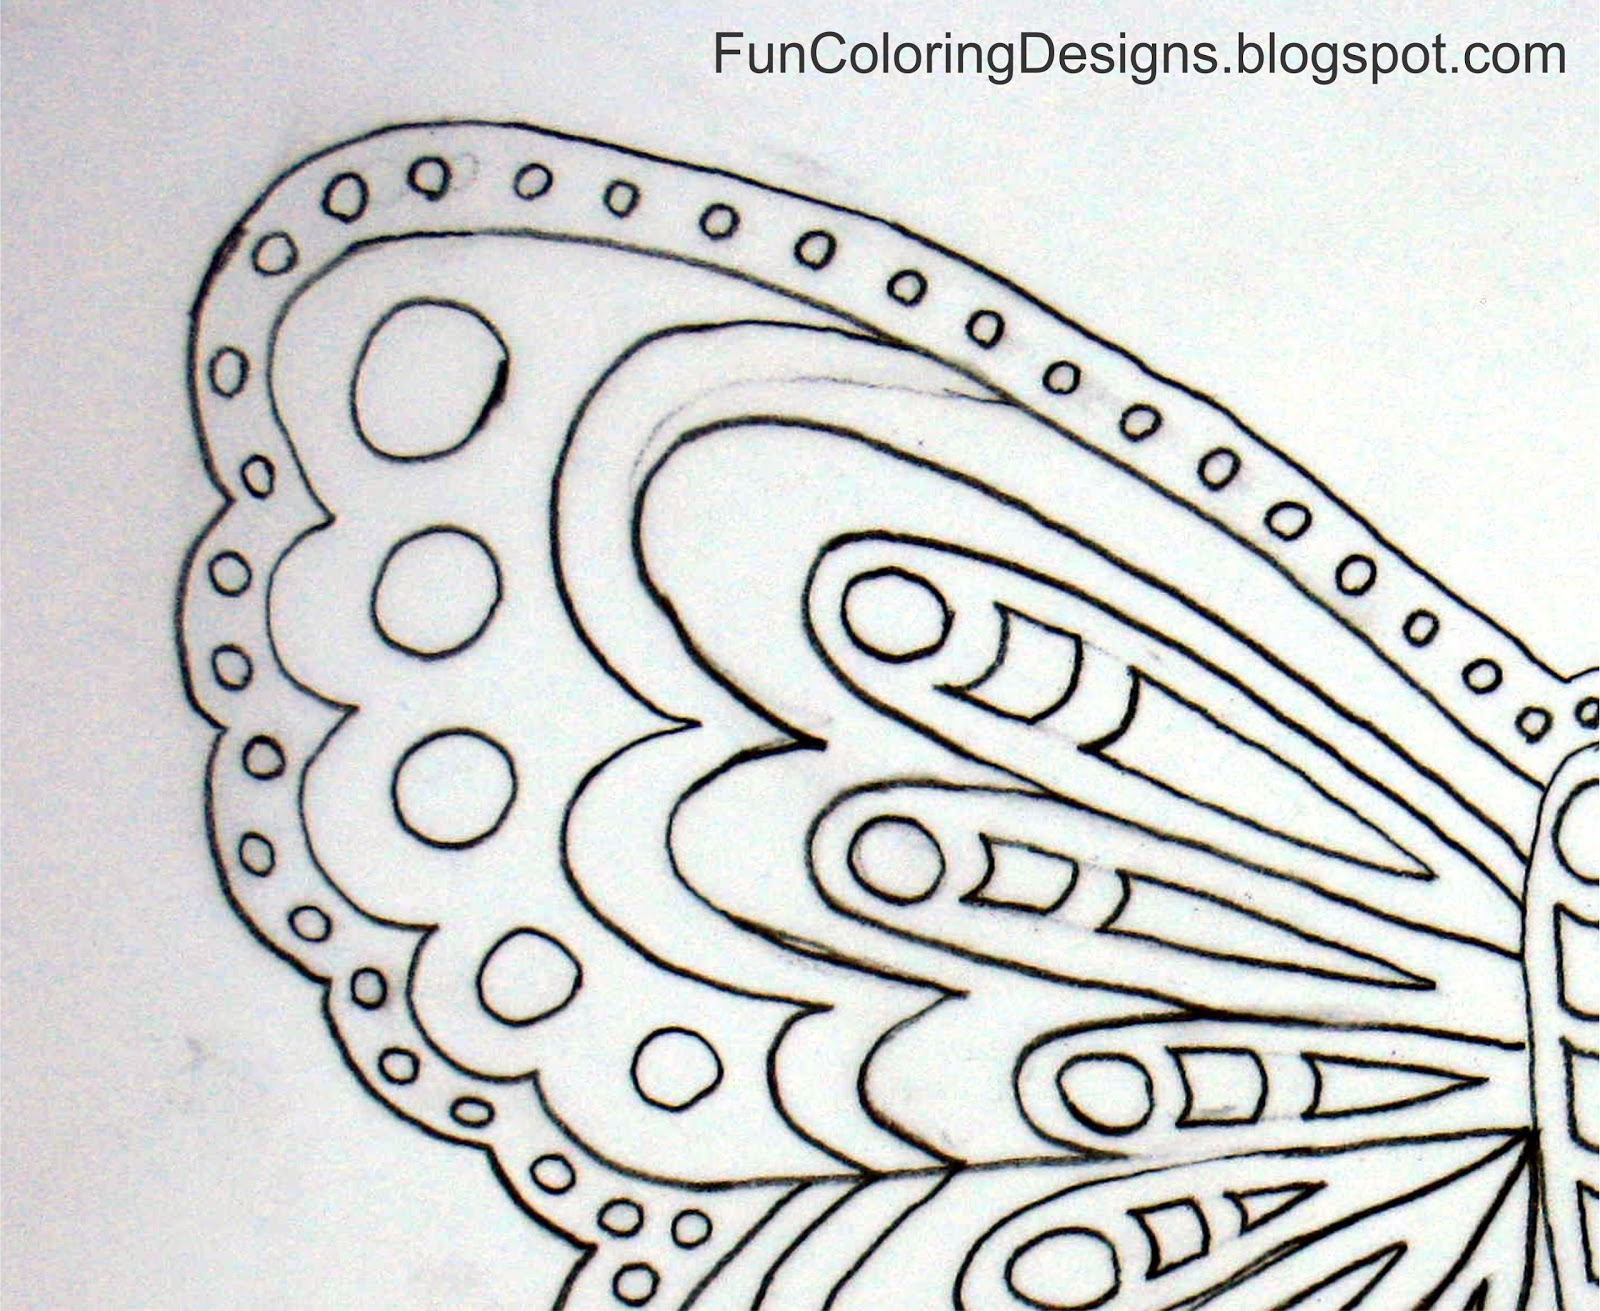 25 Top Photos Ideas For How To Draw Cool Designs On Paper ...Easy Cool Designs To Draw On Paper